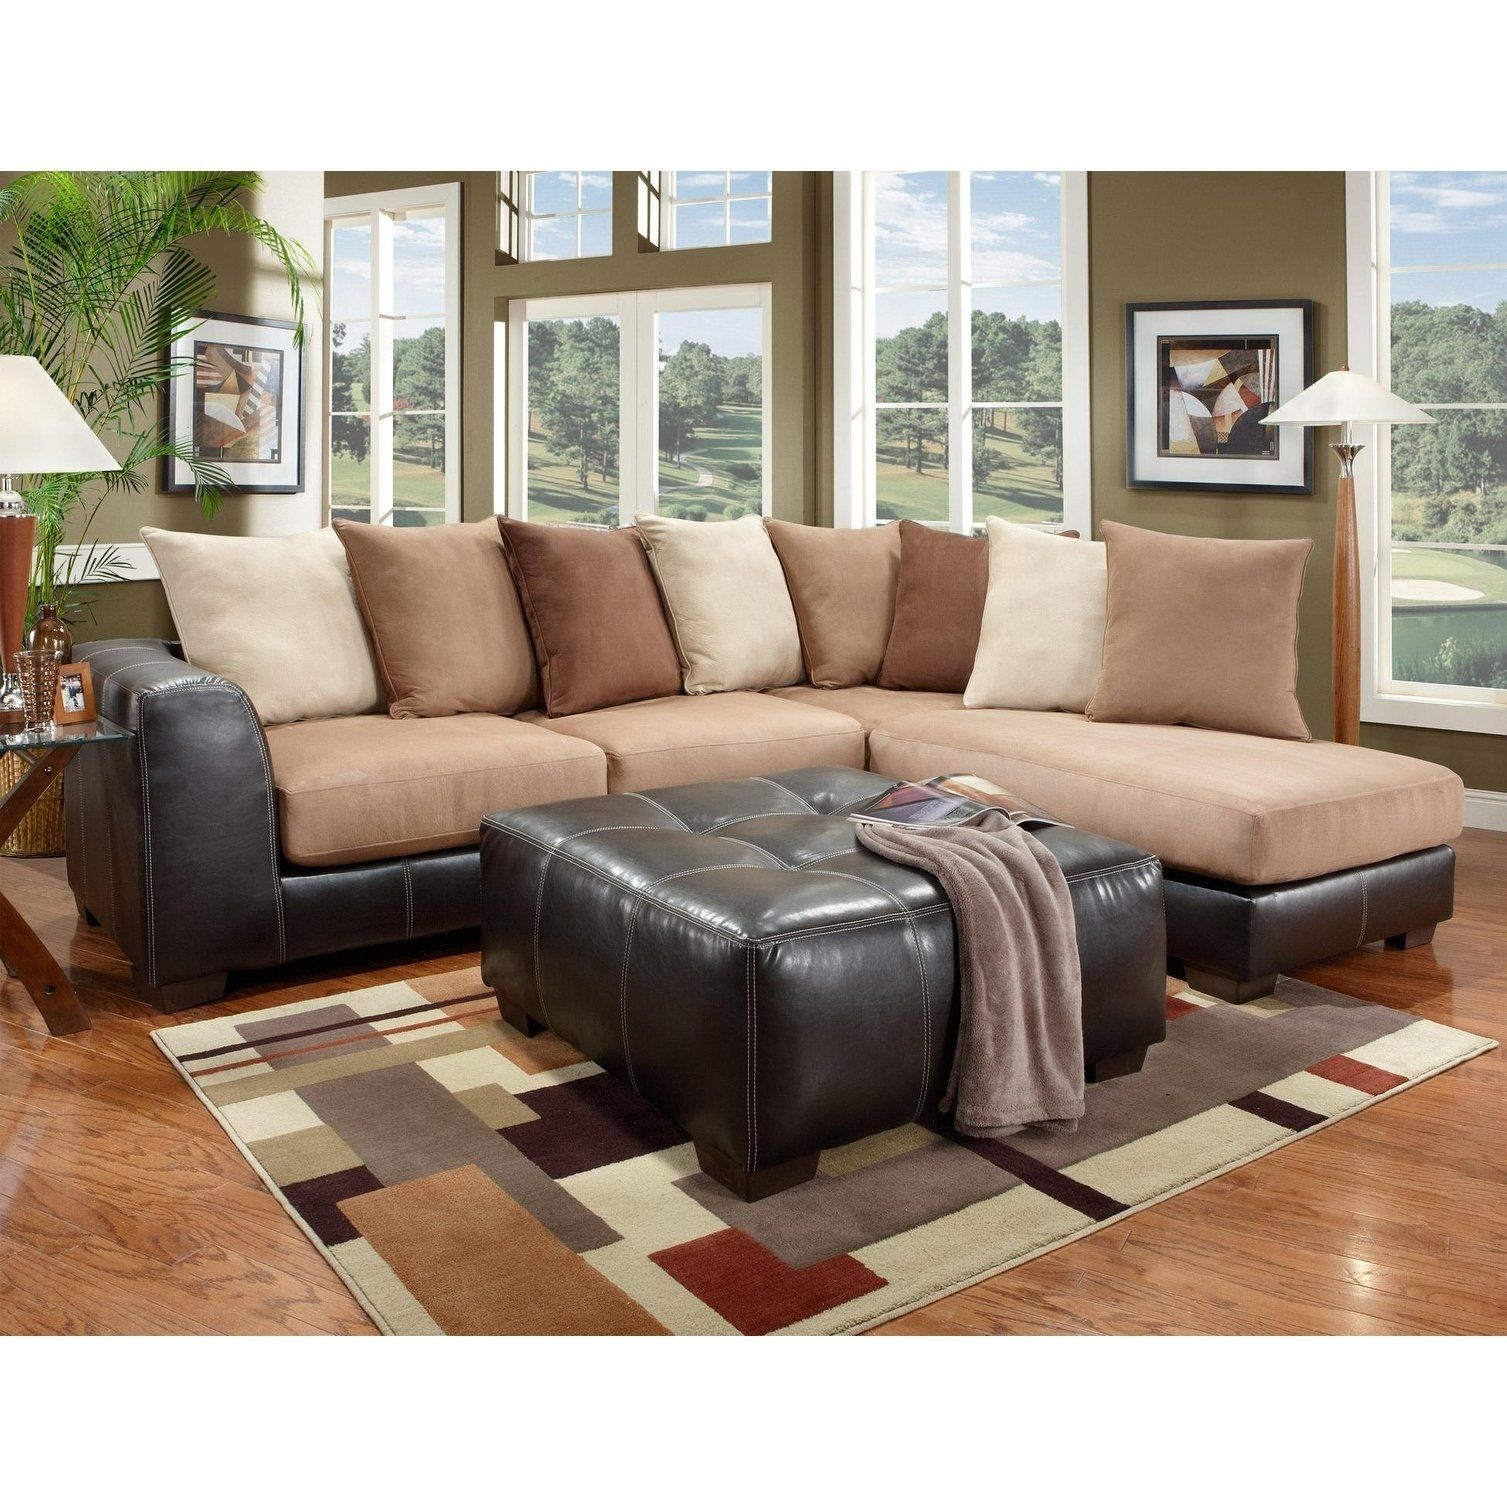 Super Landon Sea Rider Saddle And Laredo Mocha 2 Piece Sectional Gmtry Best Dining Table And Chair Ideas Images Gmtryco